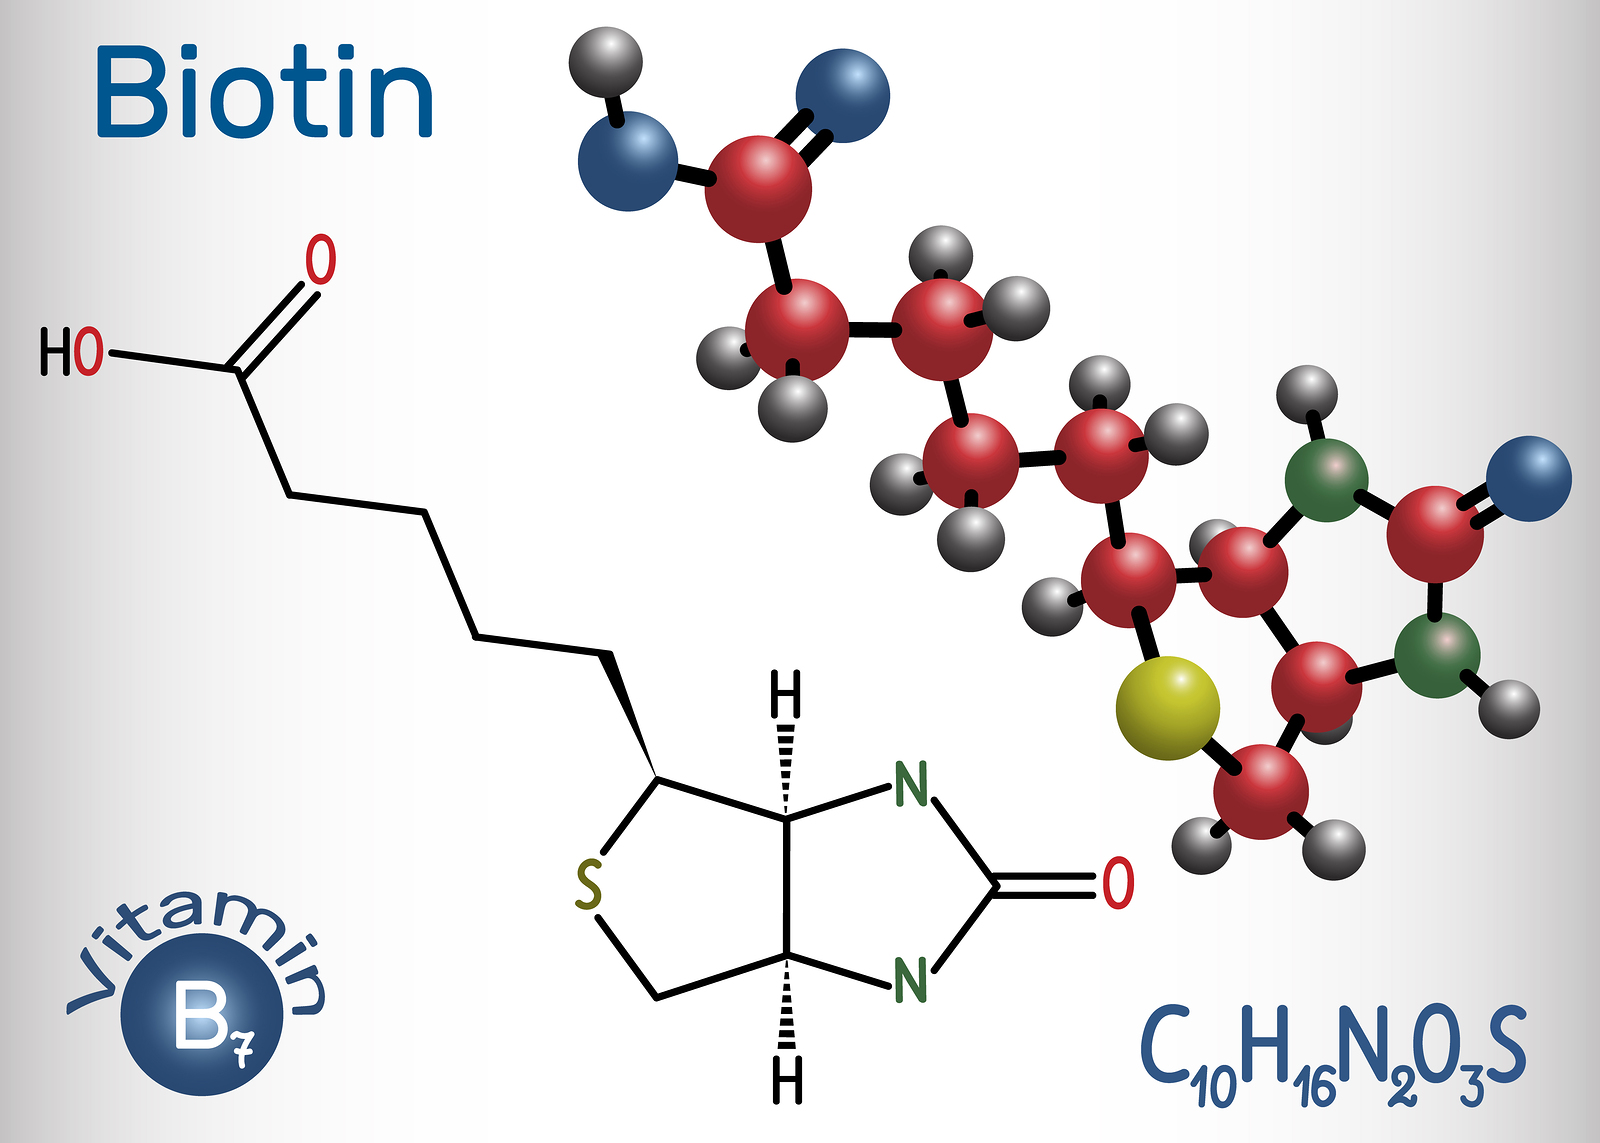 Biotin (vitamin B7) Beta-Hydroxyisovalerate treatment high low meaning HealthMatters.io Genova